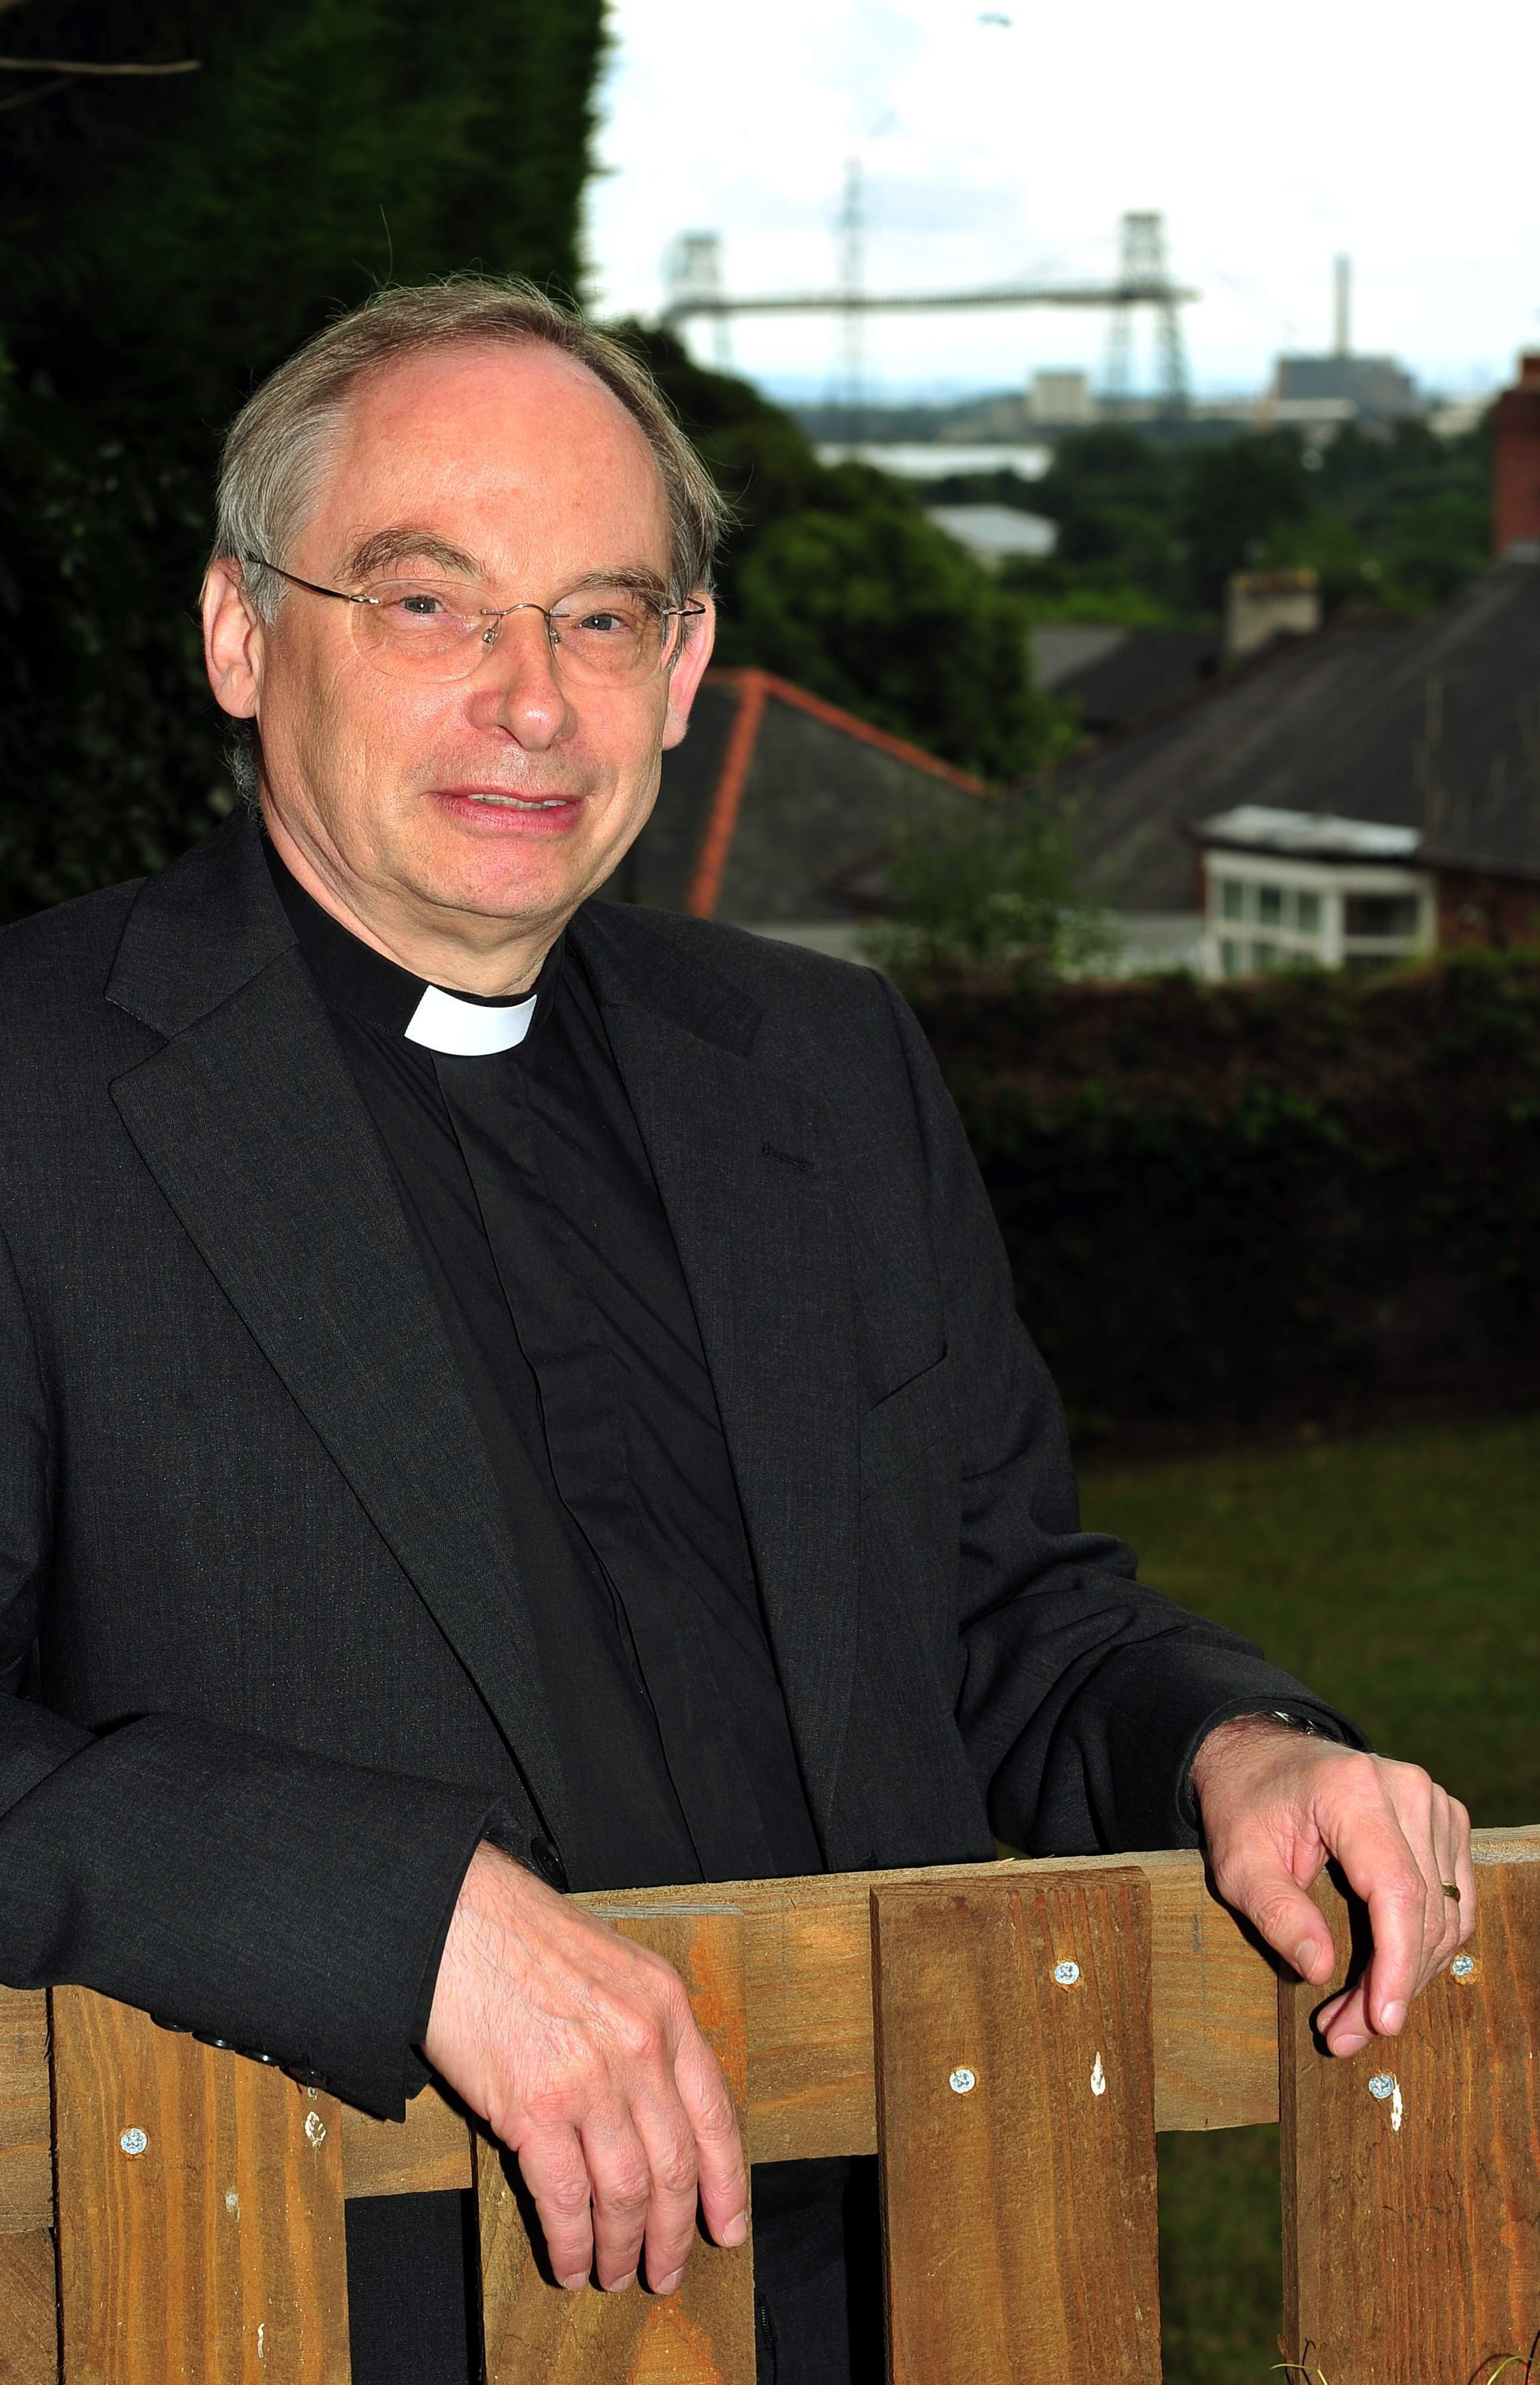 The Bishop of Monmouth Richard Pain.